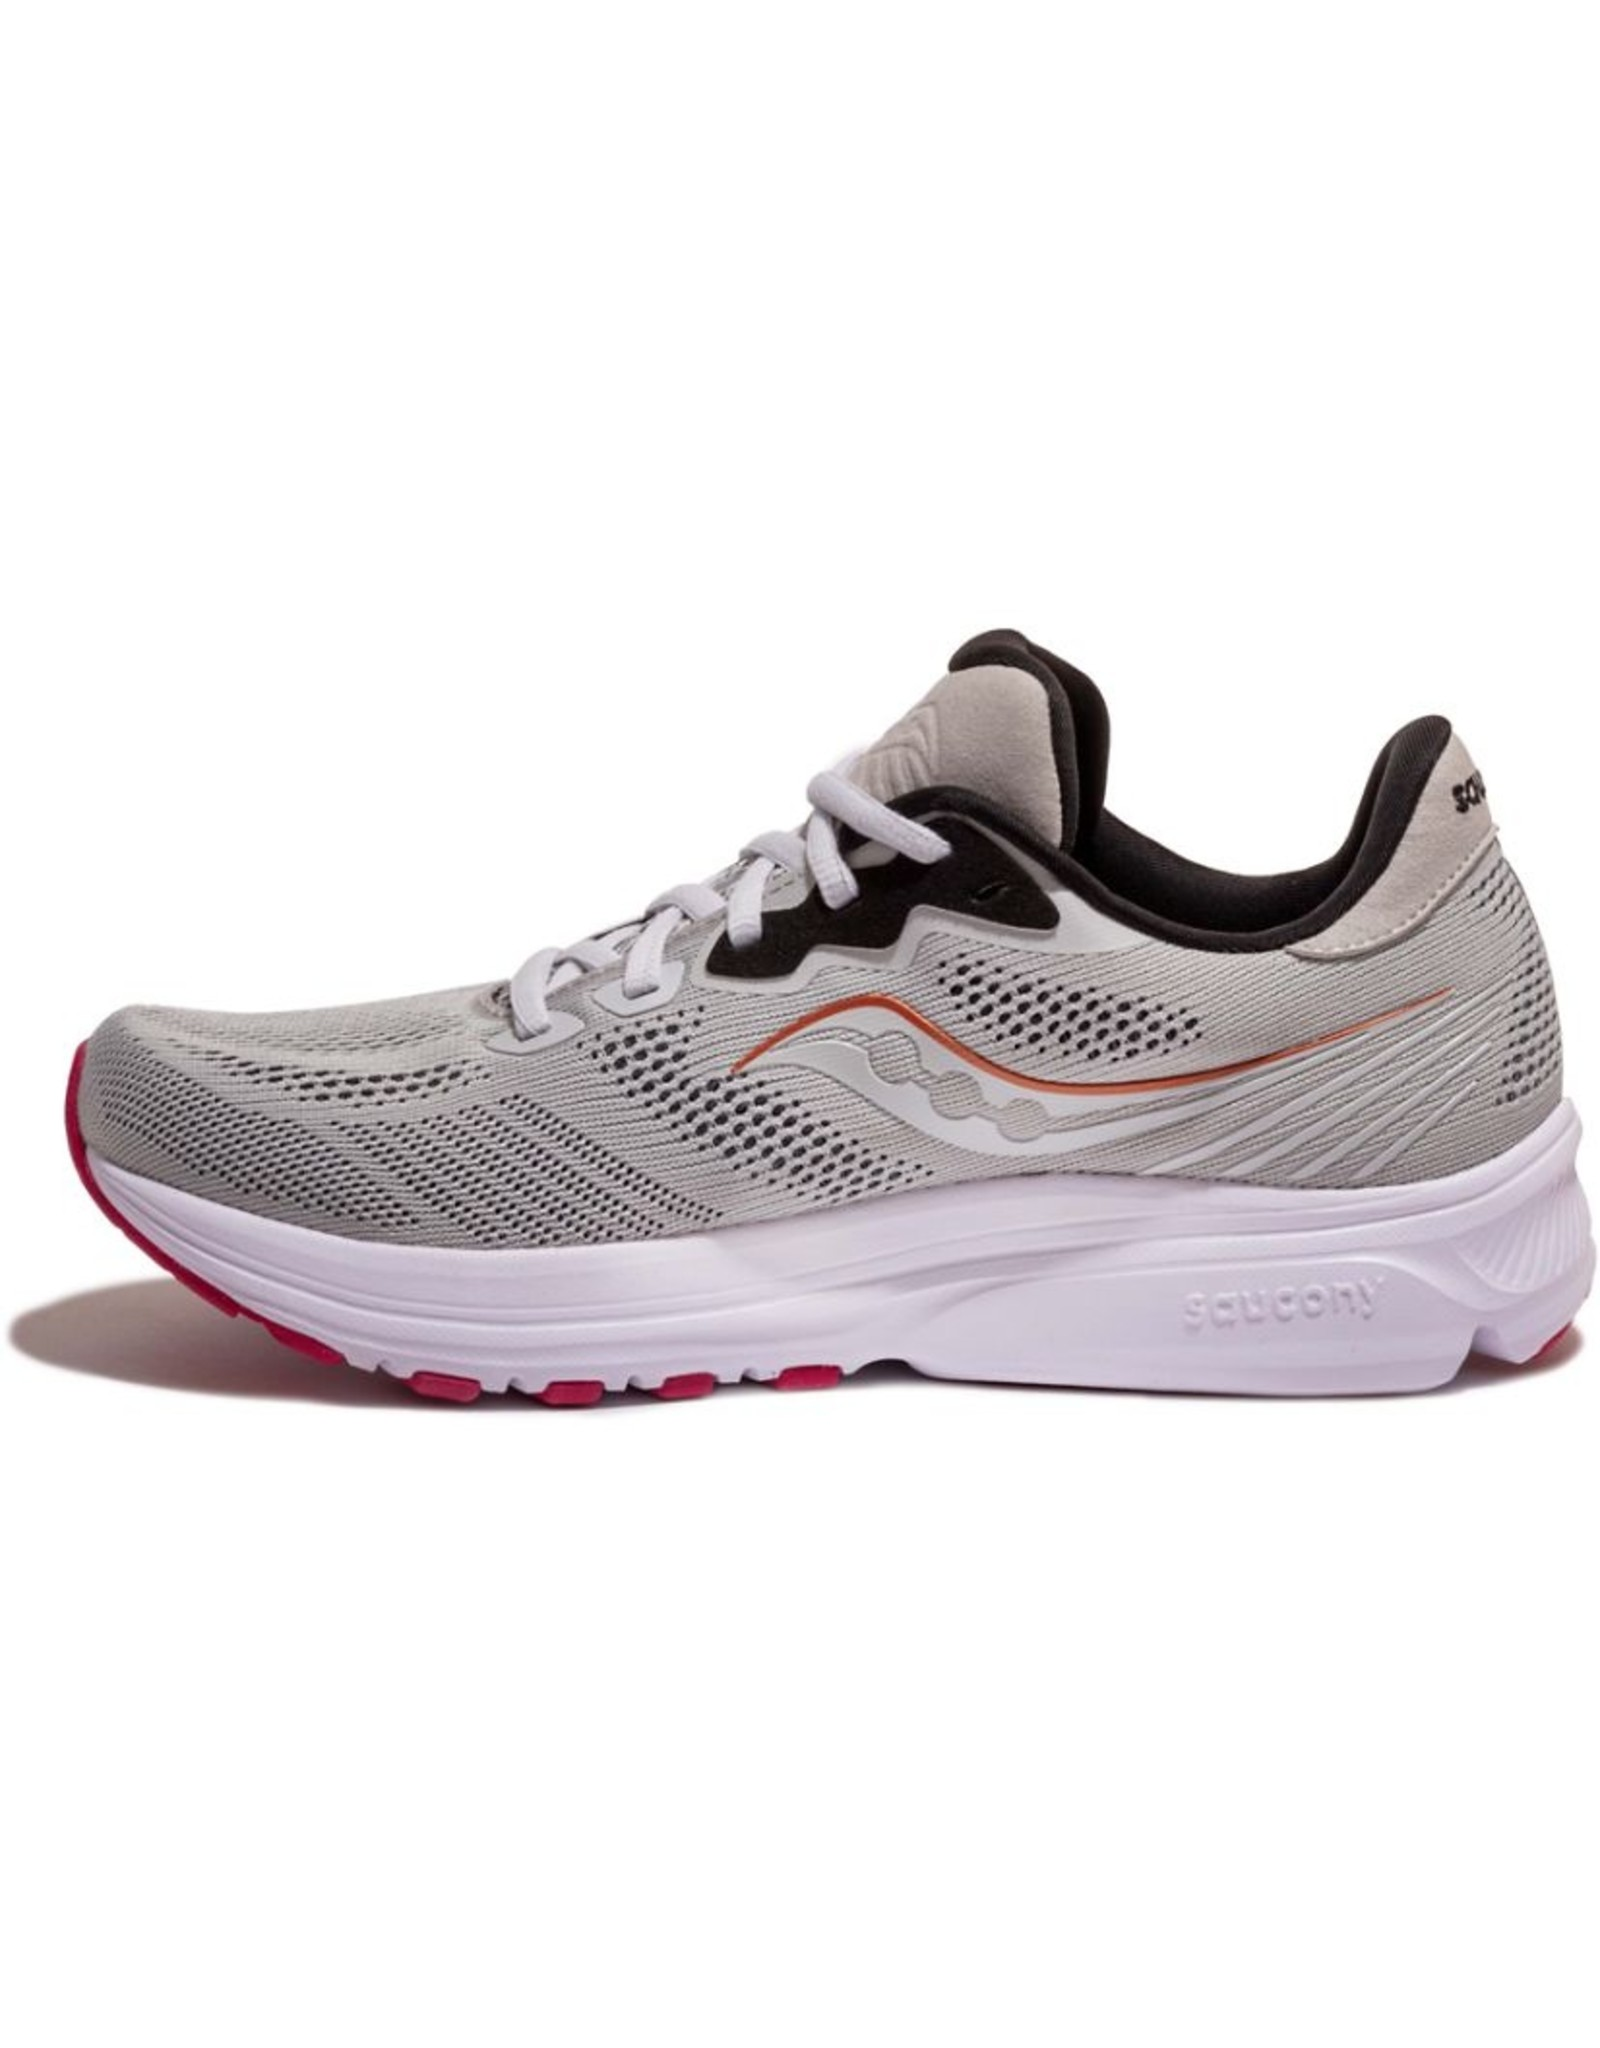 Saucony RIDE 14 - FOG/CHERRY-Dames